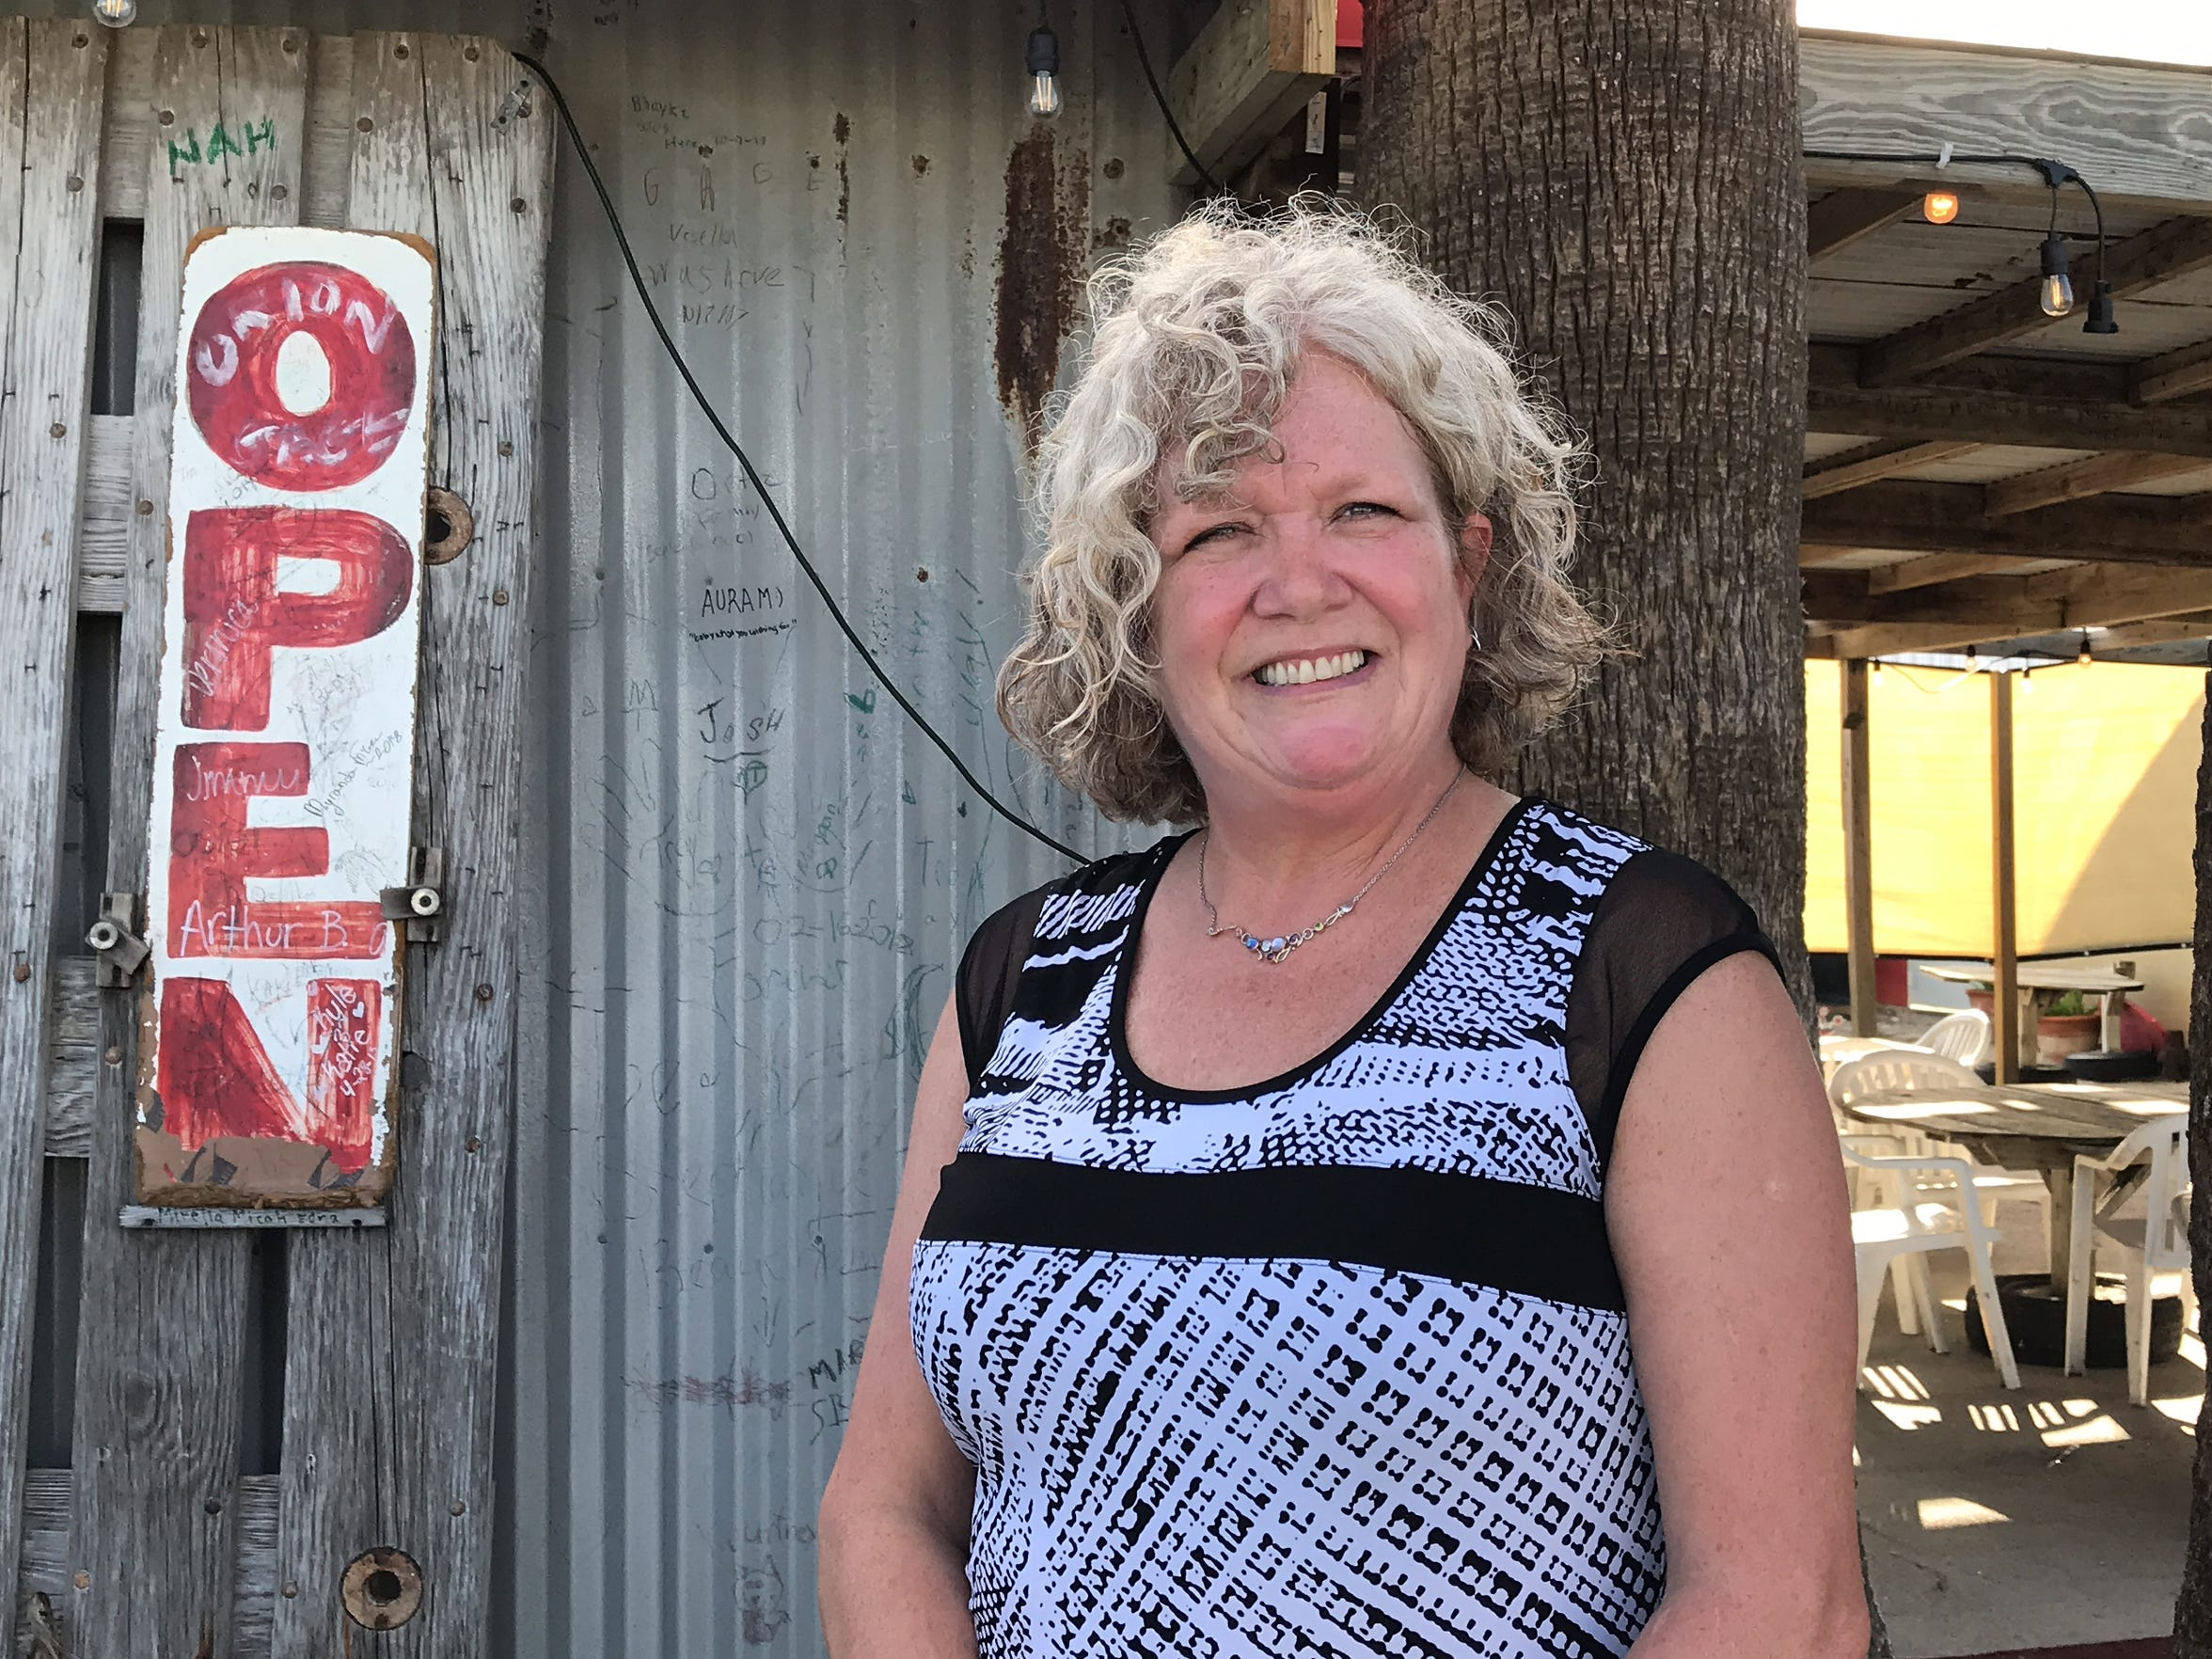 Ramona LeBlanc, owner of The Boiling Pot, took ownership of the Cajun eatery five years ago.